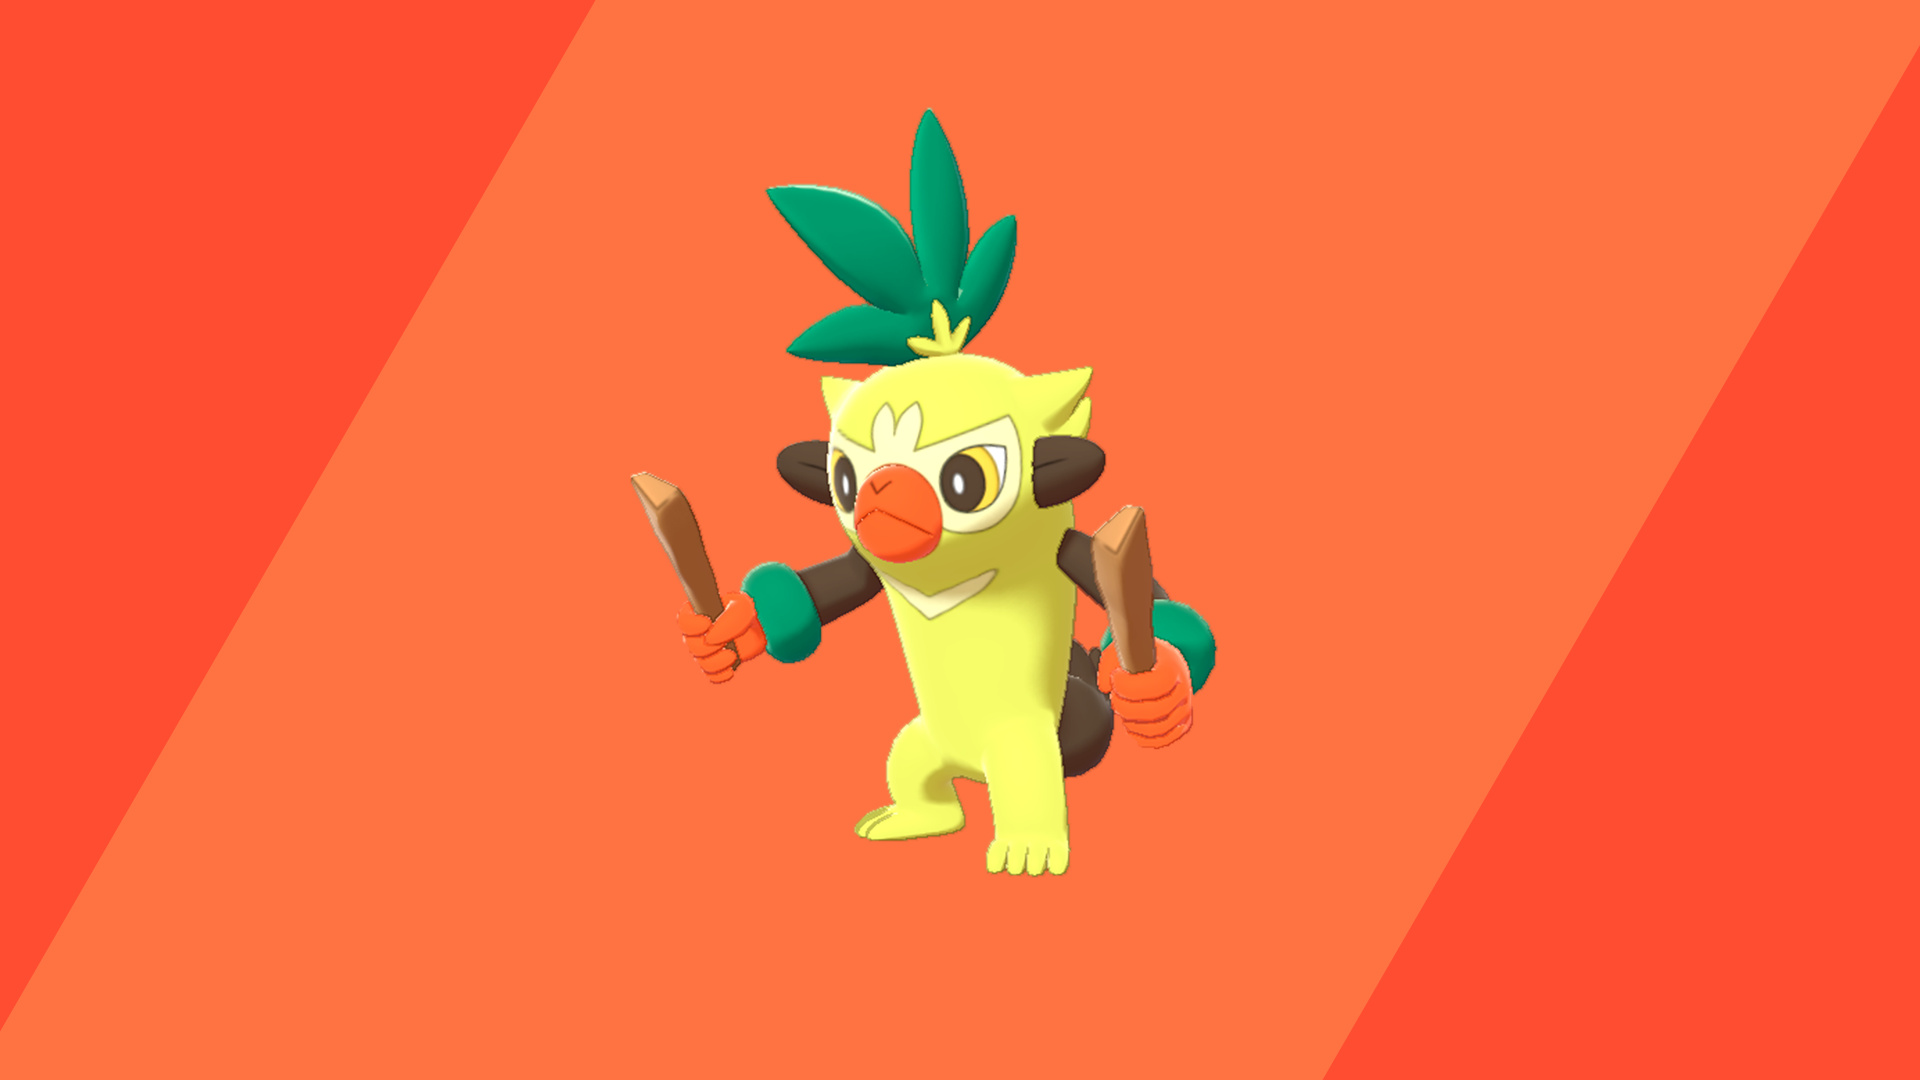 Pokemon Sword And Shield Best Starter Grookey Scorbunny Sobble And Their Evolutions Nintendo Life Page 2 Also grovle evolved into sceptre in level 36. pokemon sword and shield best starter